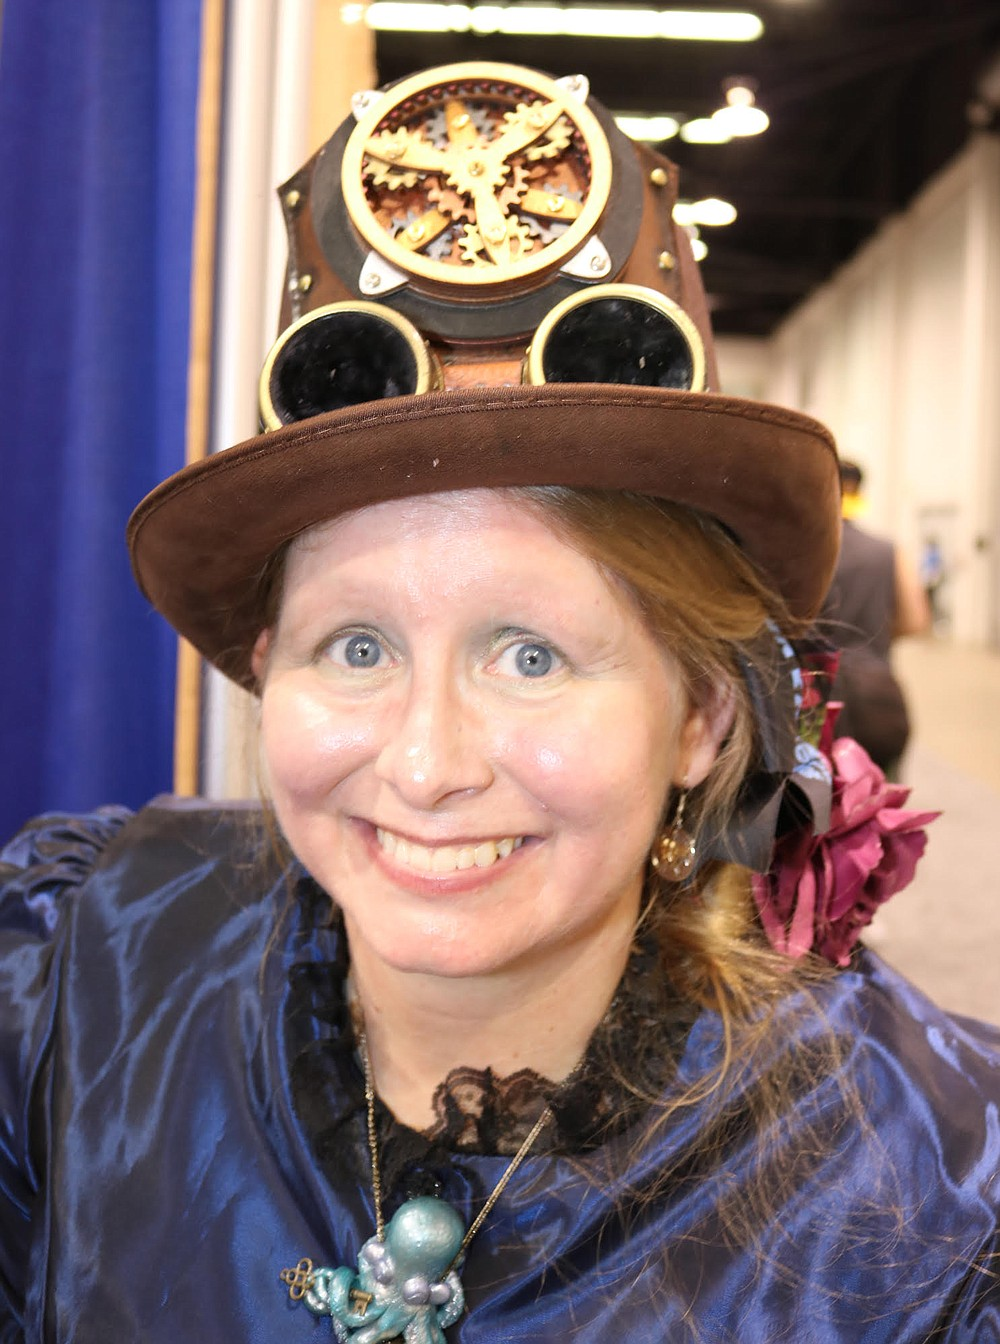 Anastasia Hunter drove up with friends to promote their Gaslight Expo steampunk gathering.